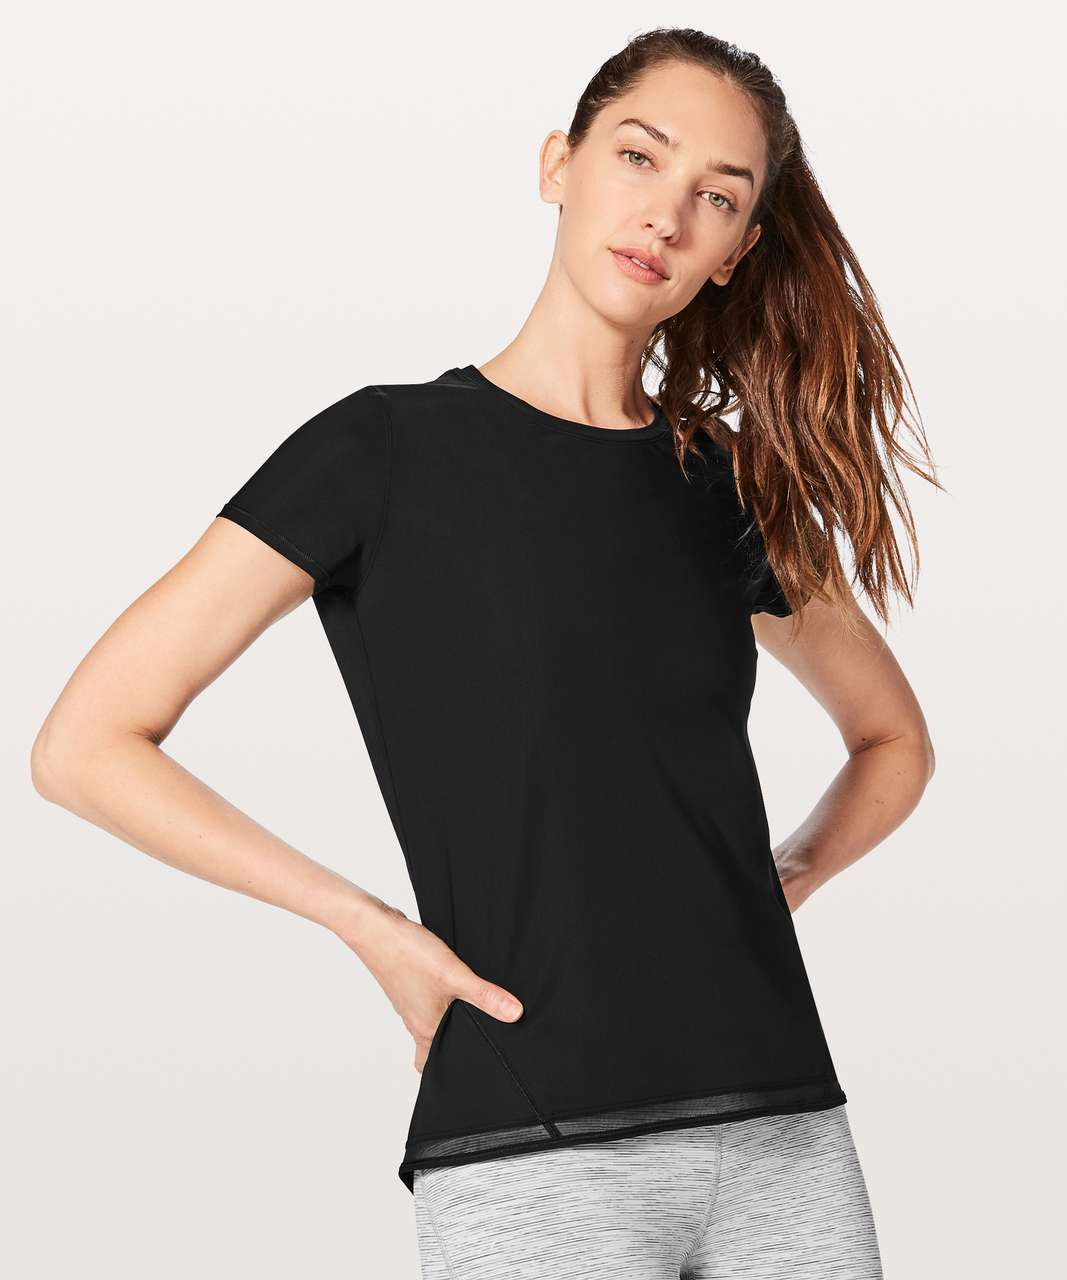 Lululemon Into the Sun Tee - Black